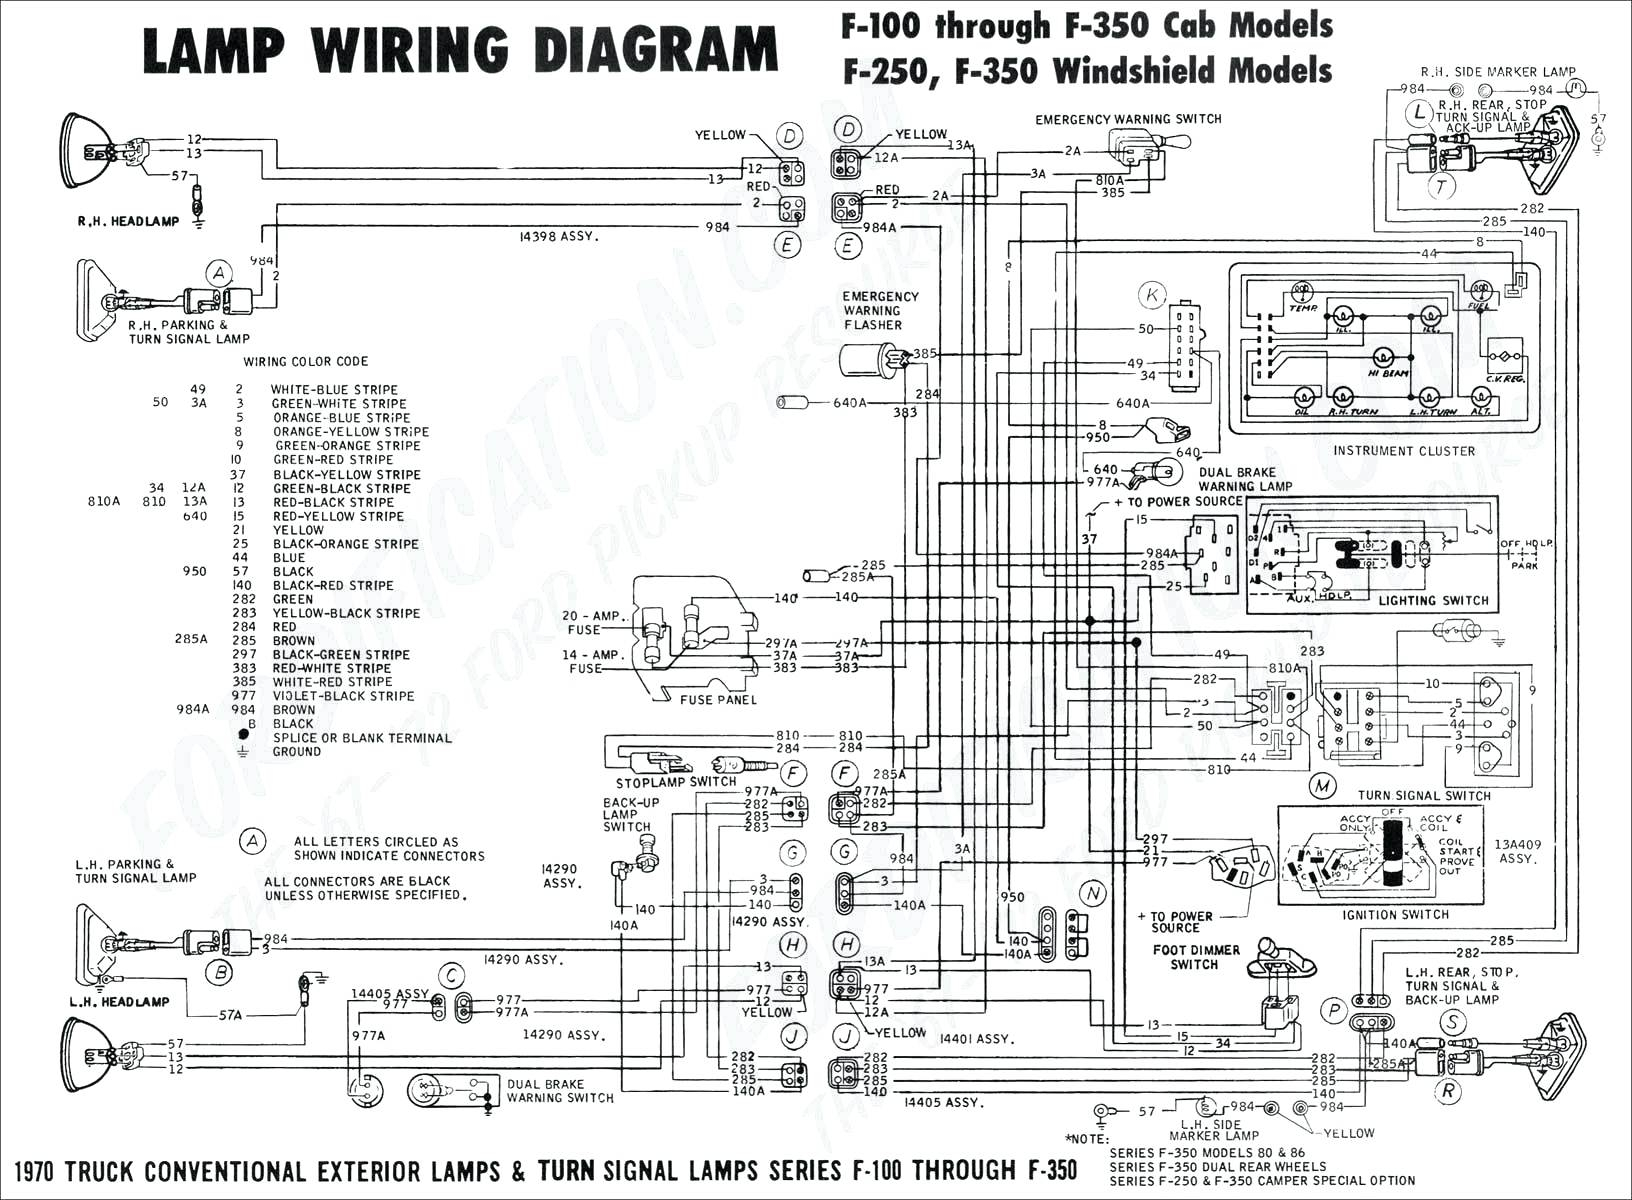 1988 volkswagen cabriolet wiring diagram nice place to get wiring VW Kit Car Wiring Diagram